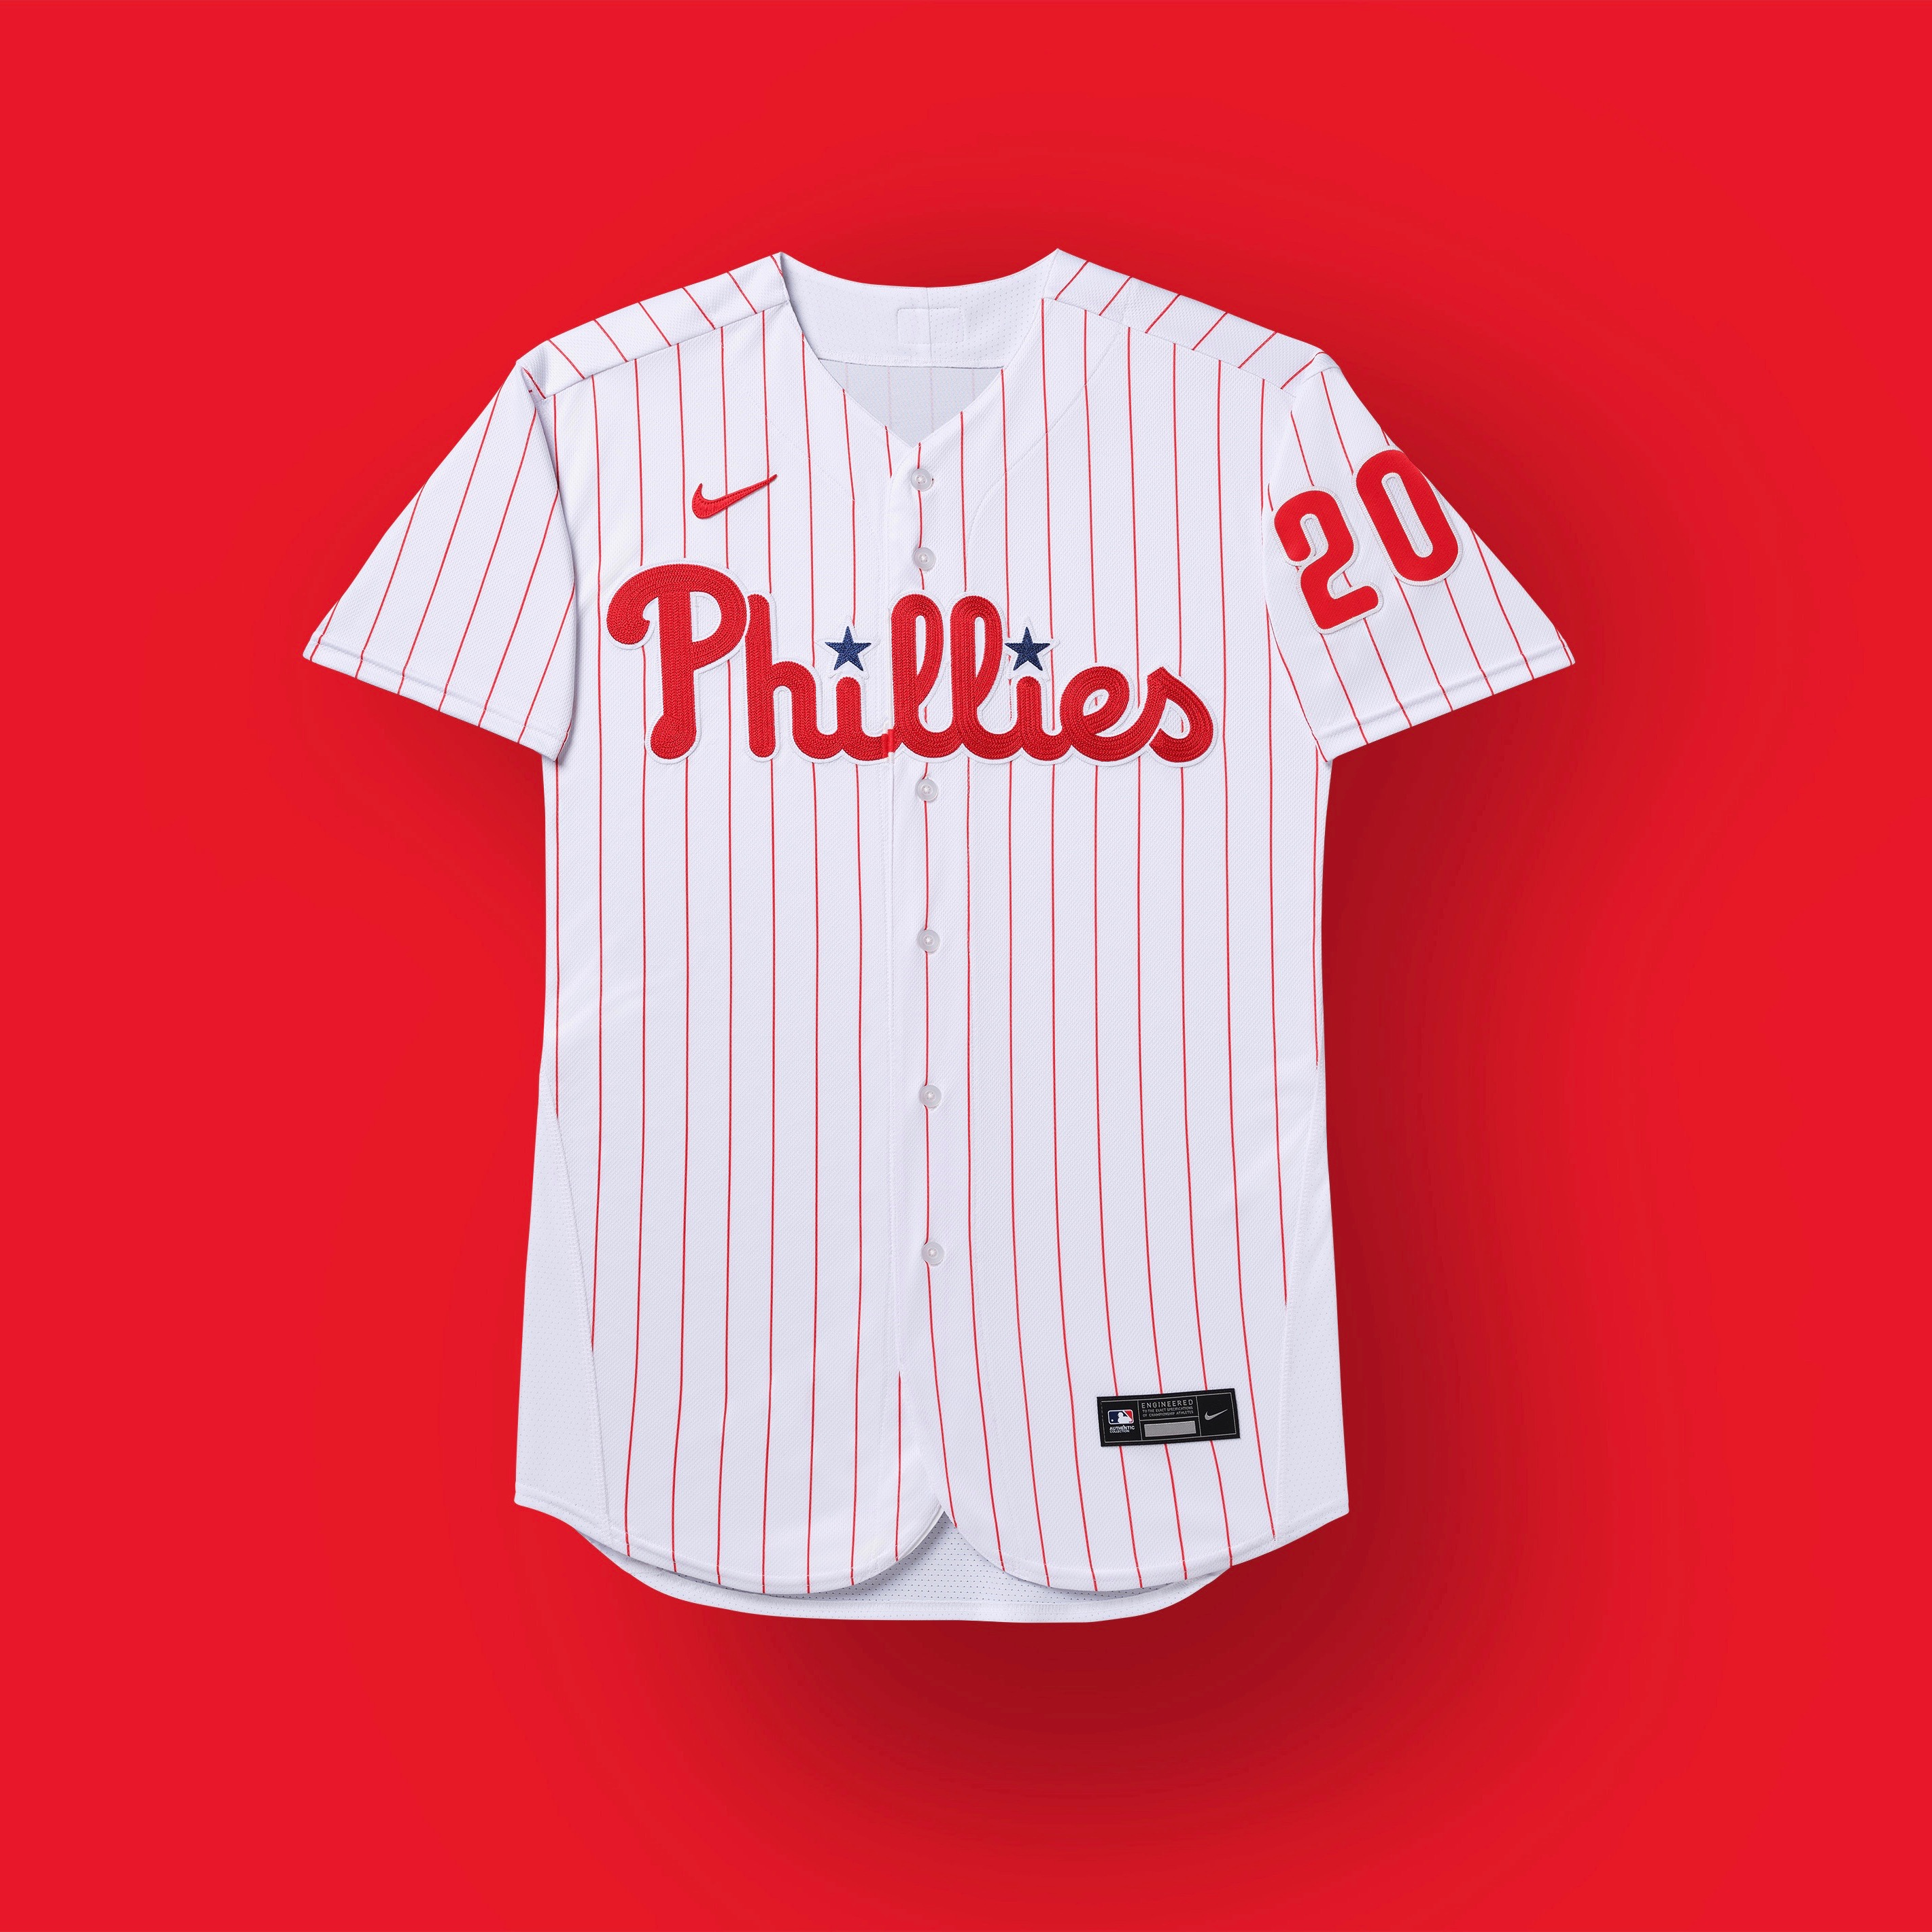 philadelphia phillies 2020 uniforms